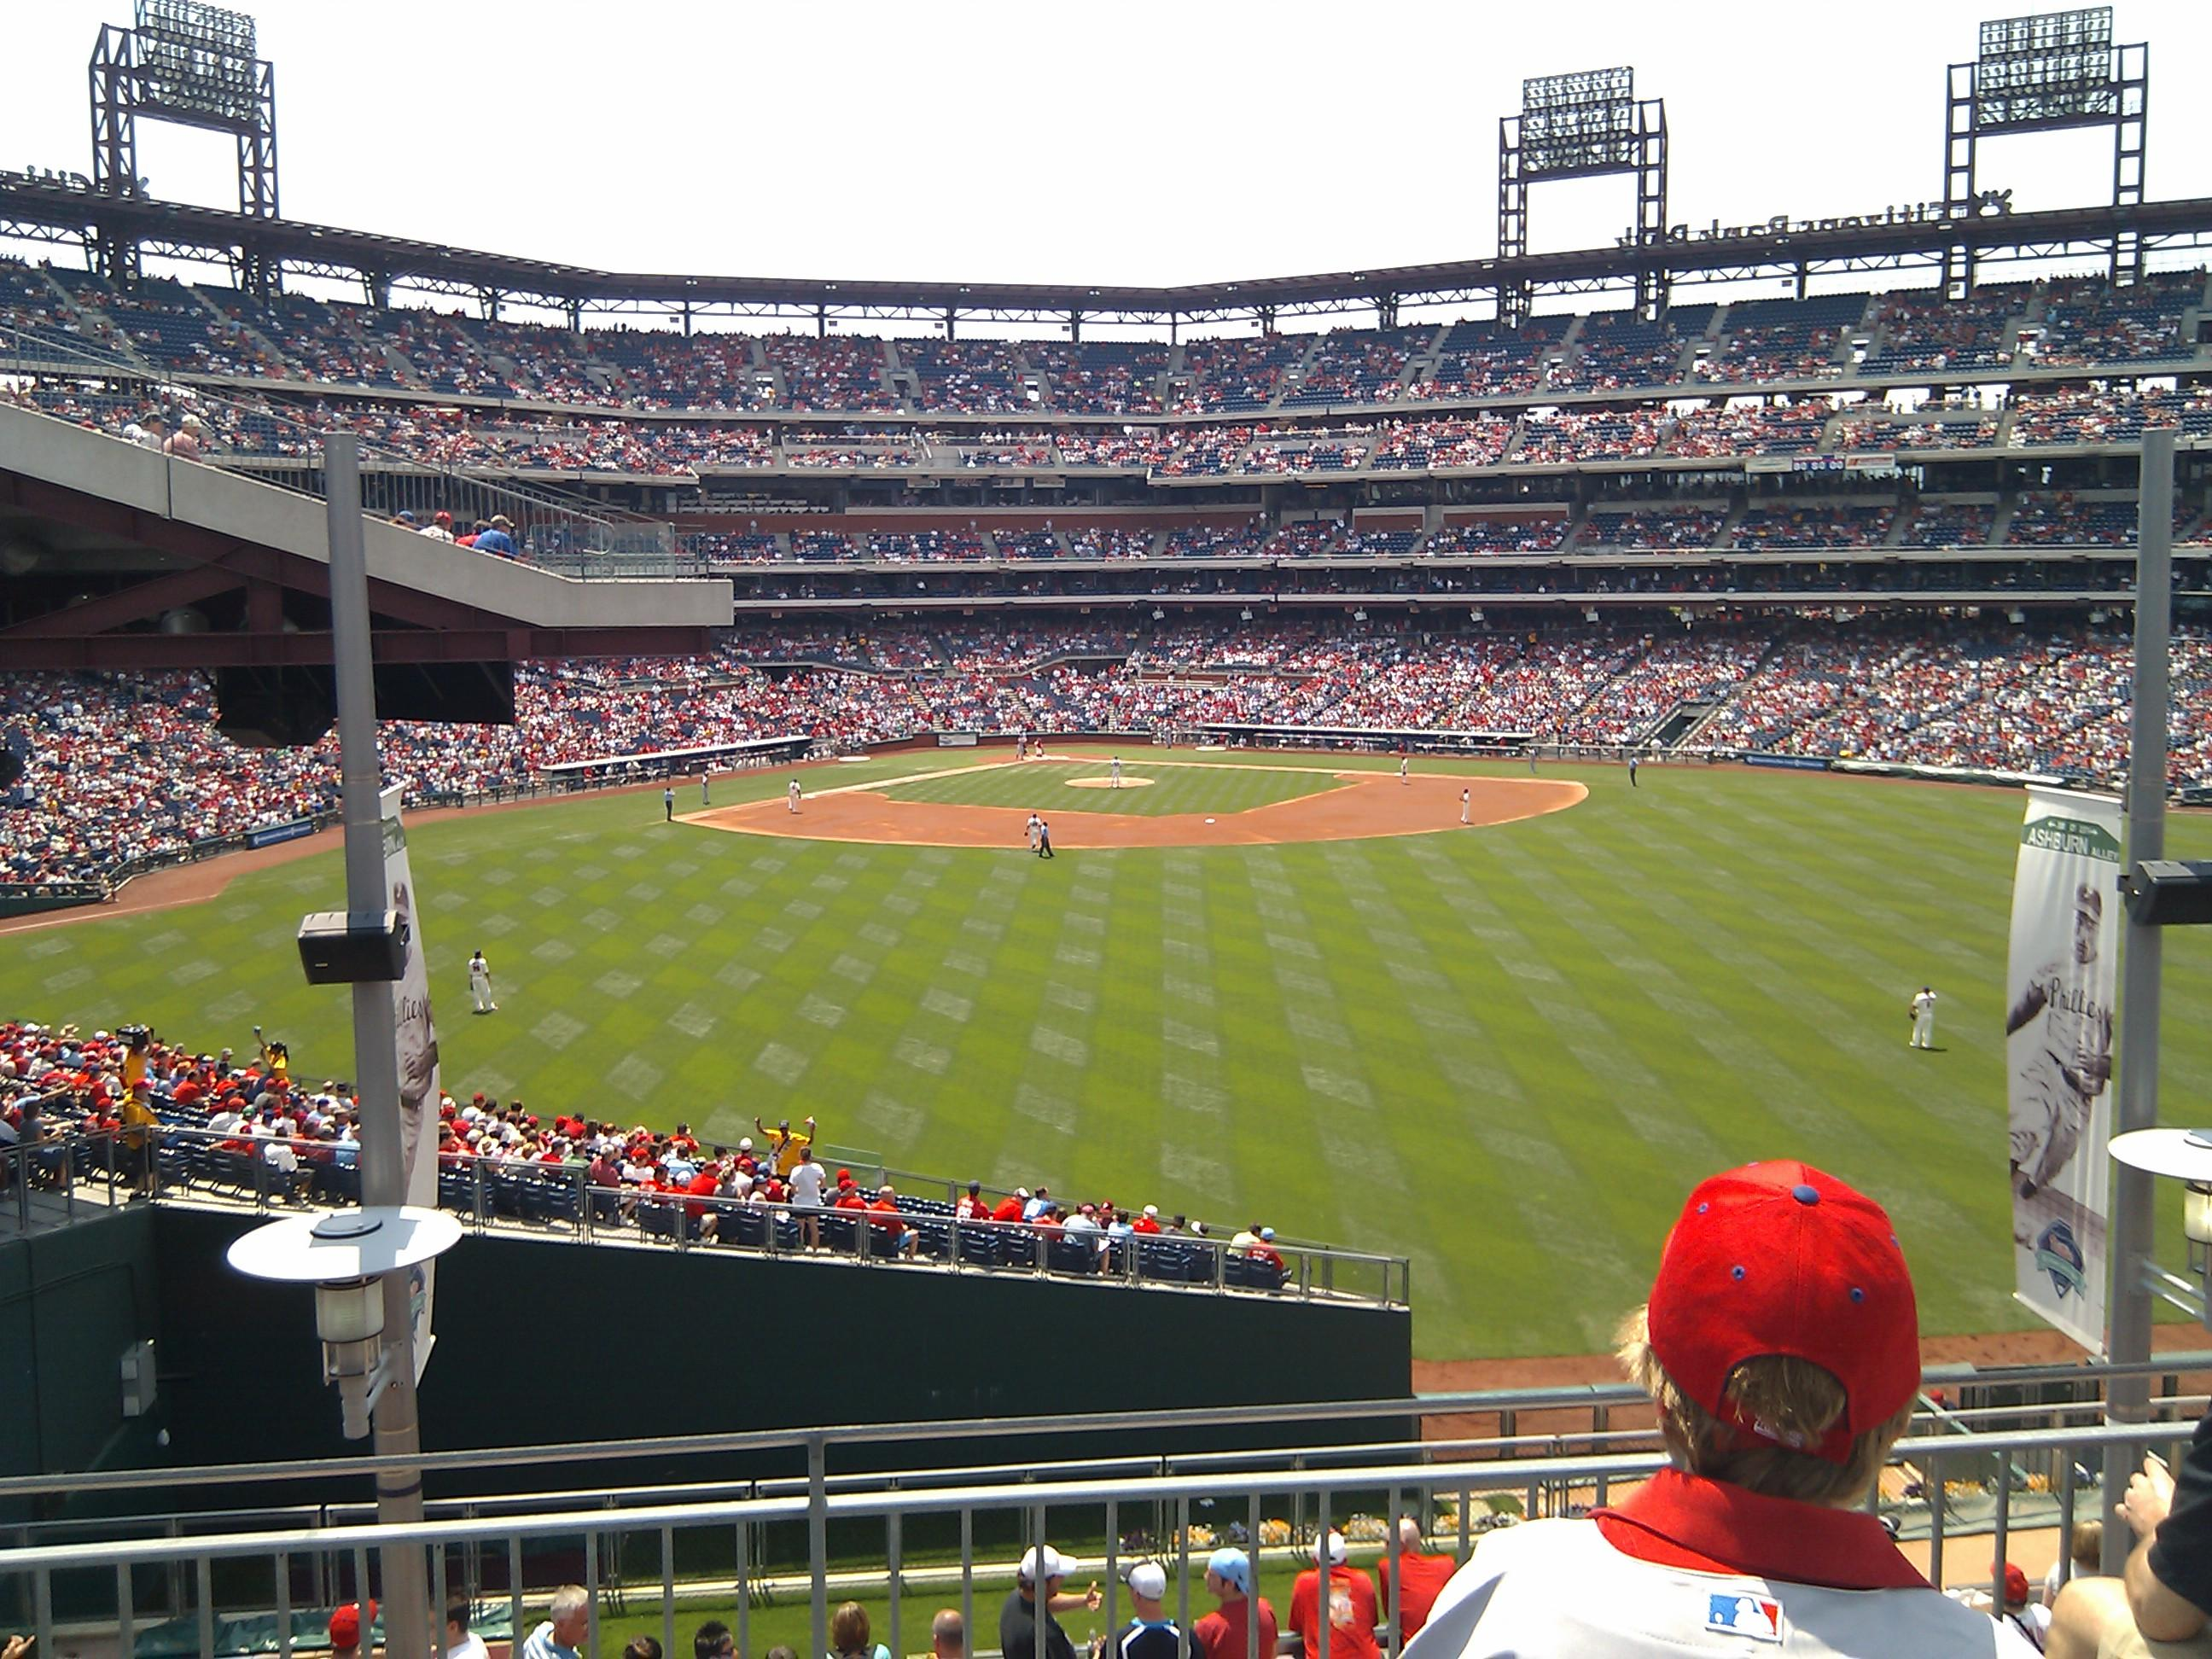 Citizens Bank Park Section Bud Light Bleachers Row 3 Seat 28